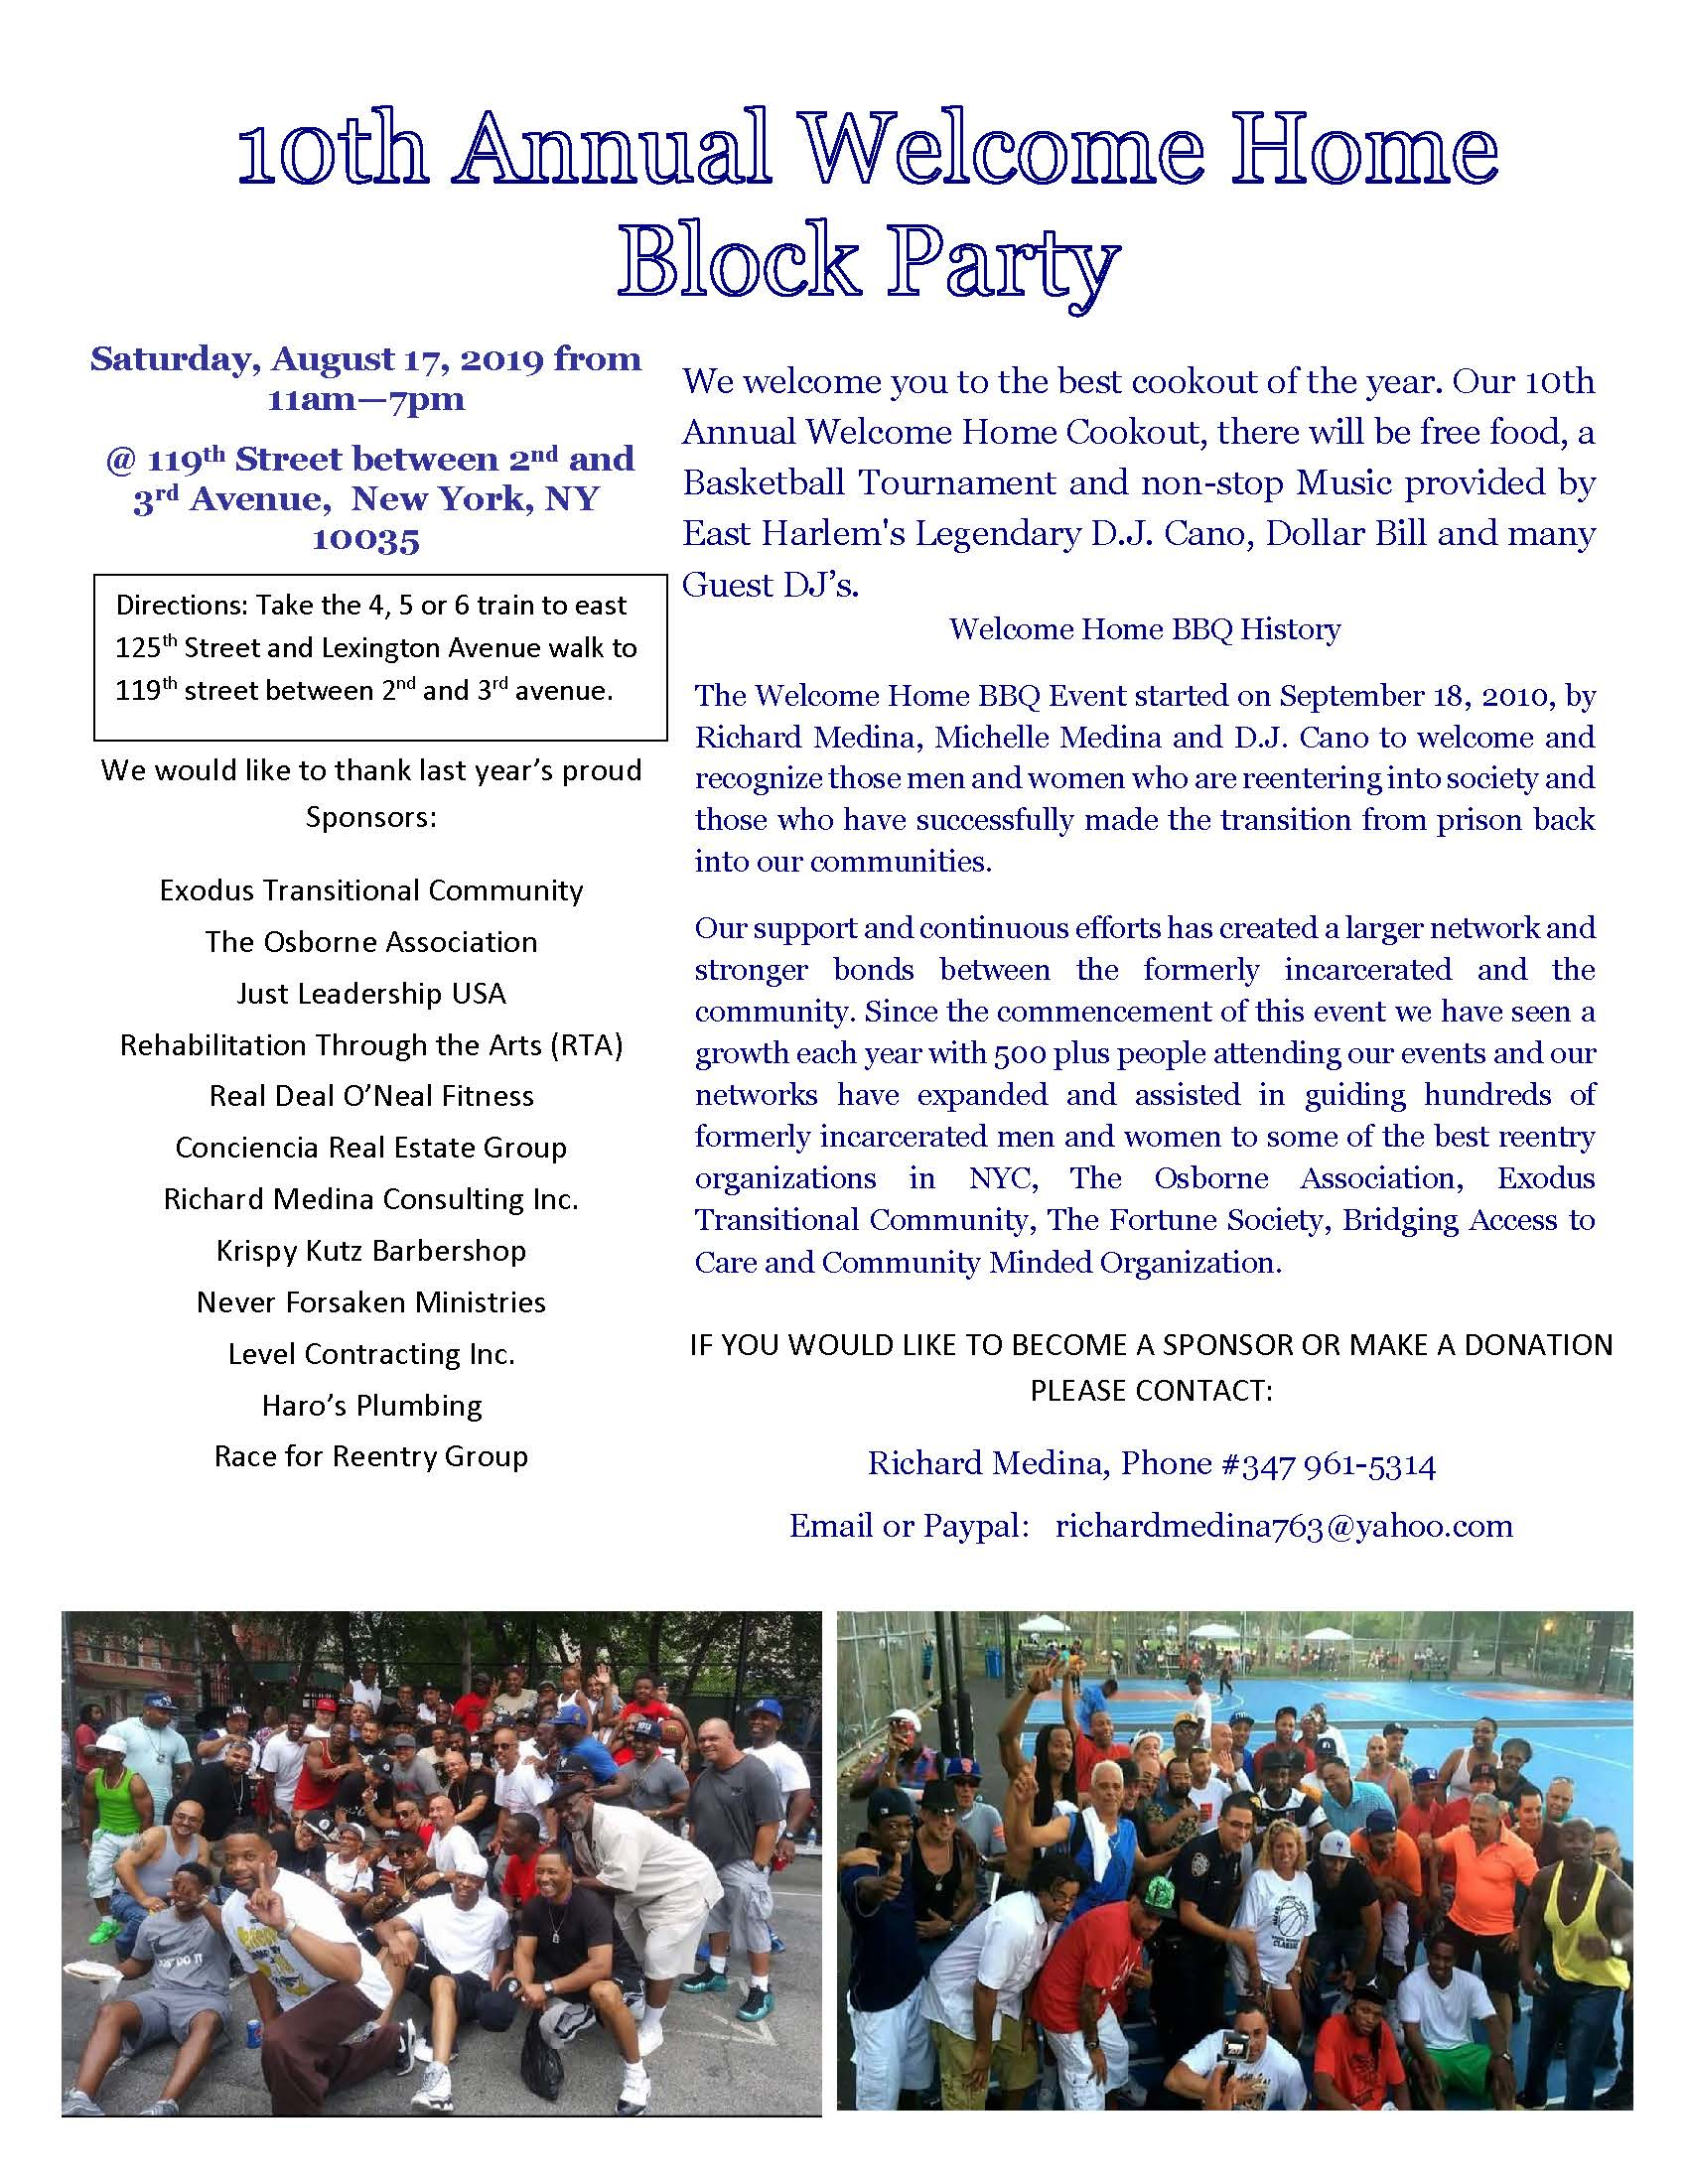 10th Annual Welcome Home BBQ Block Party.jpg